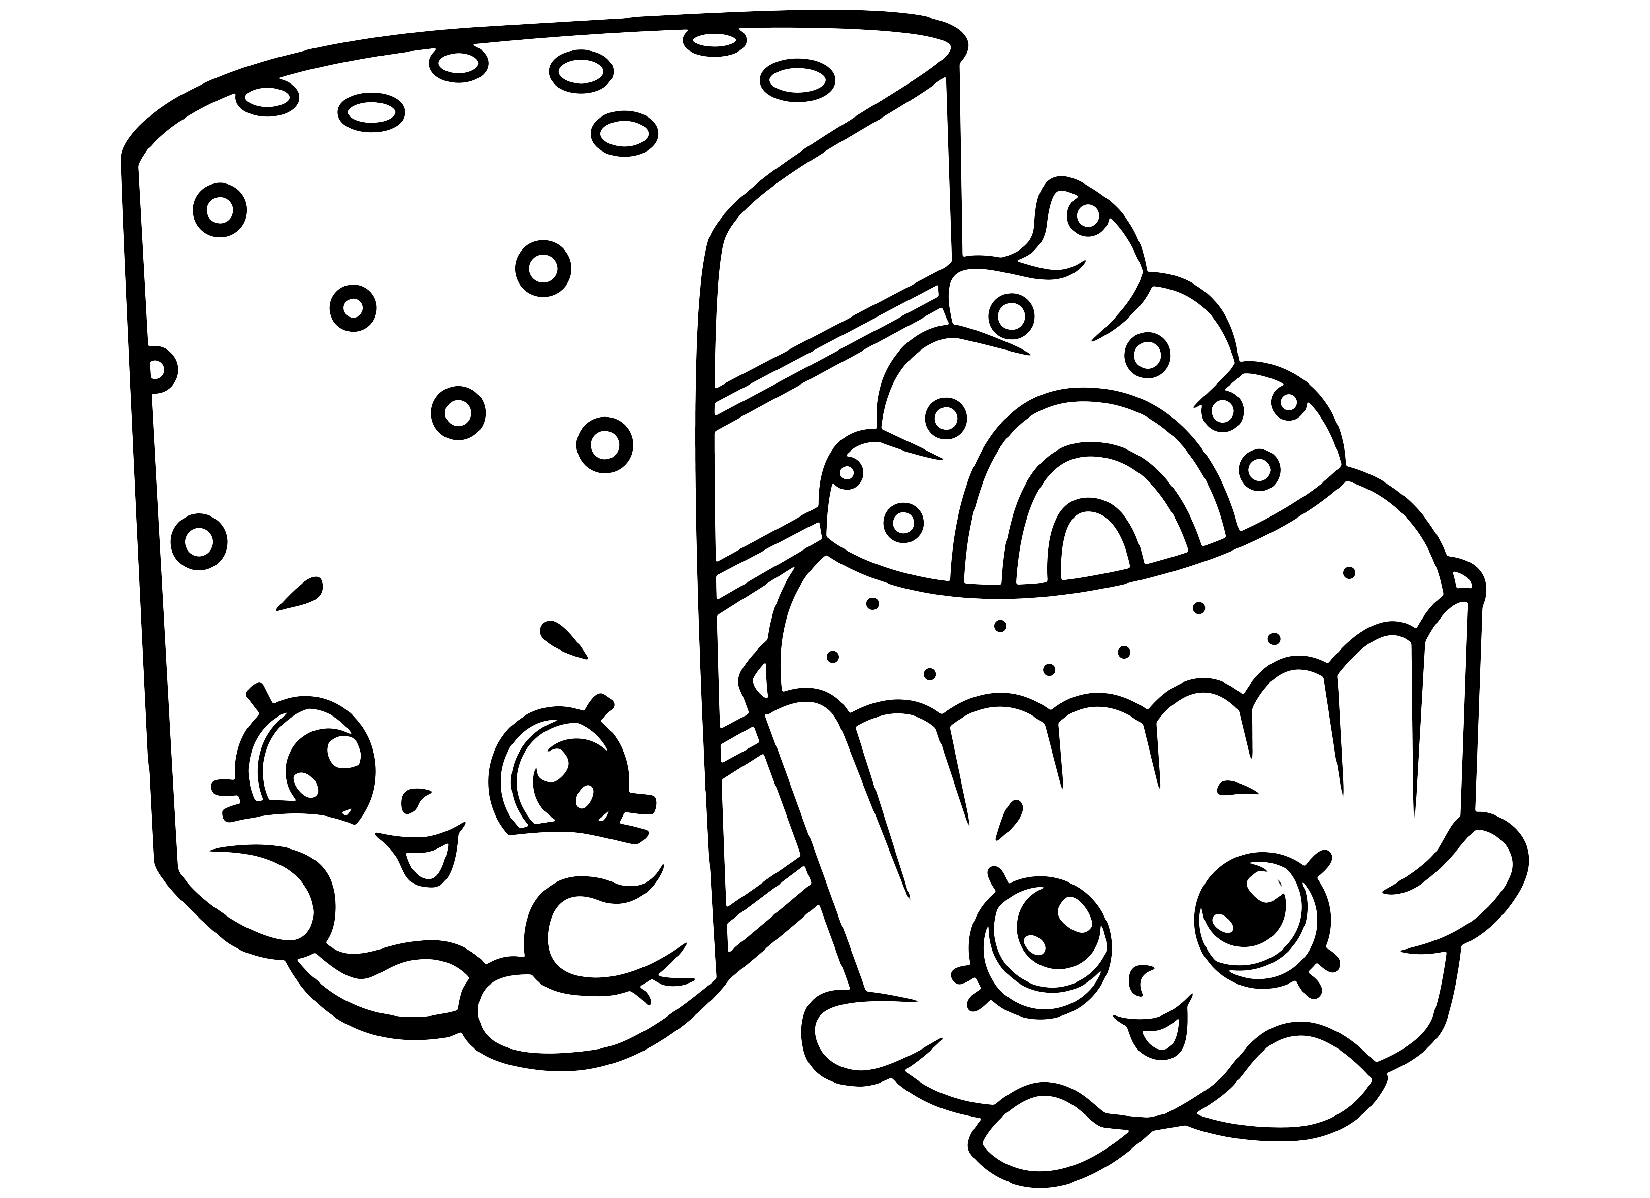 Shopkins Cheese Cake and Cupcake Limited Edition Printable Coloring Page